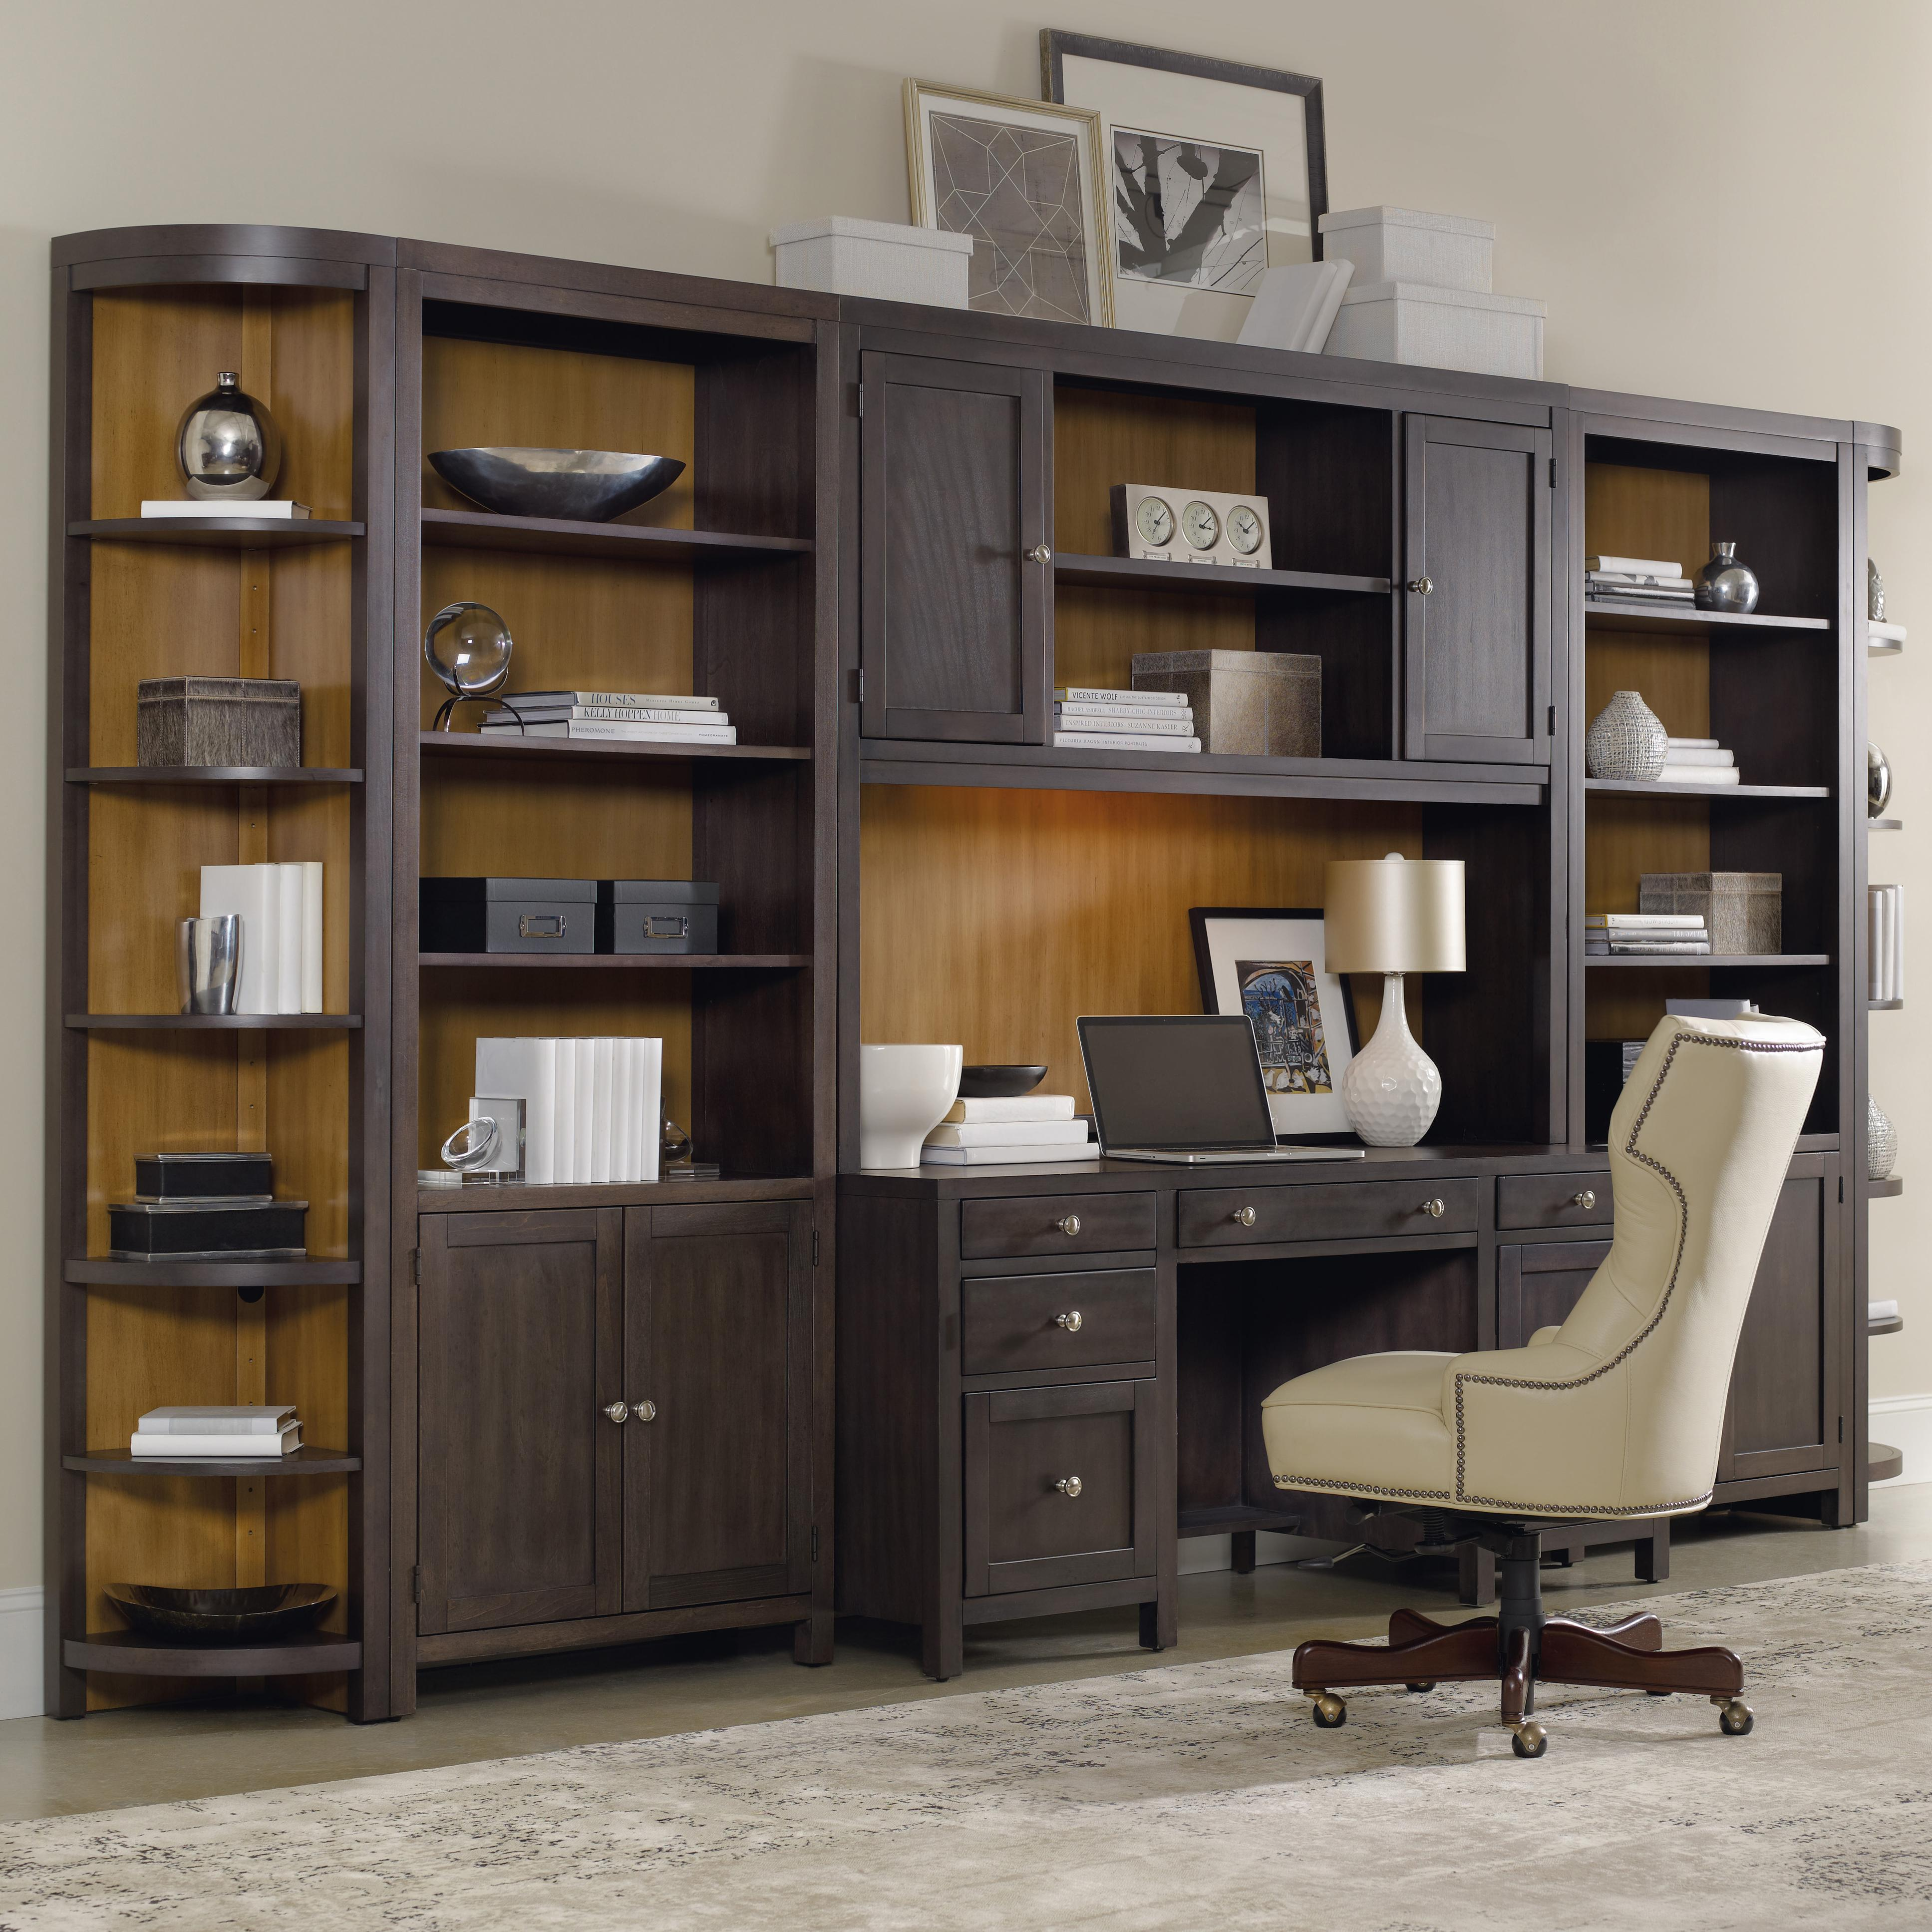 Home fice Wall Unit with puter Credenza by Hooker